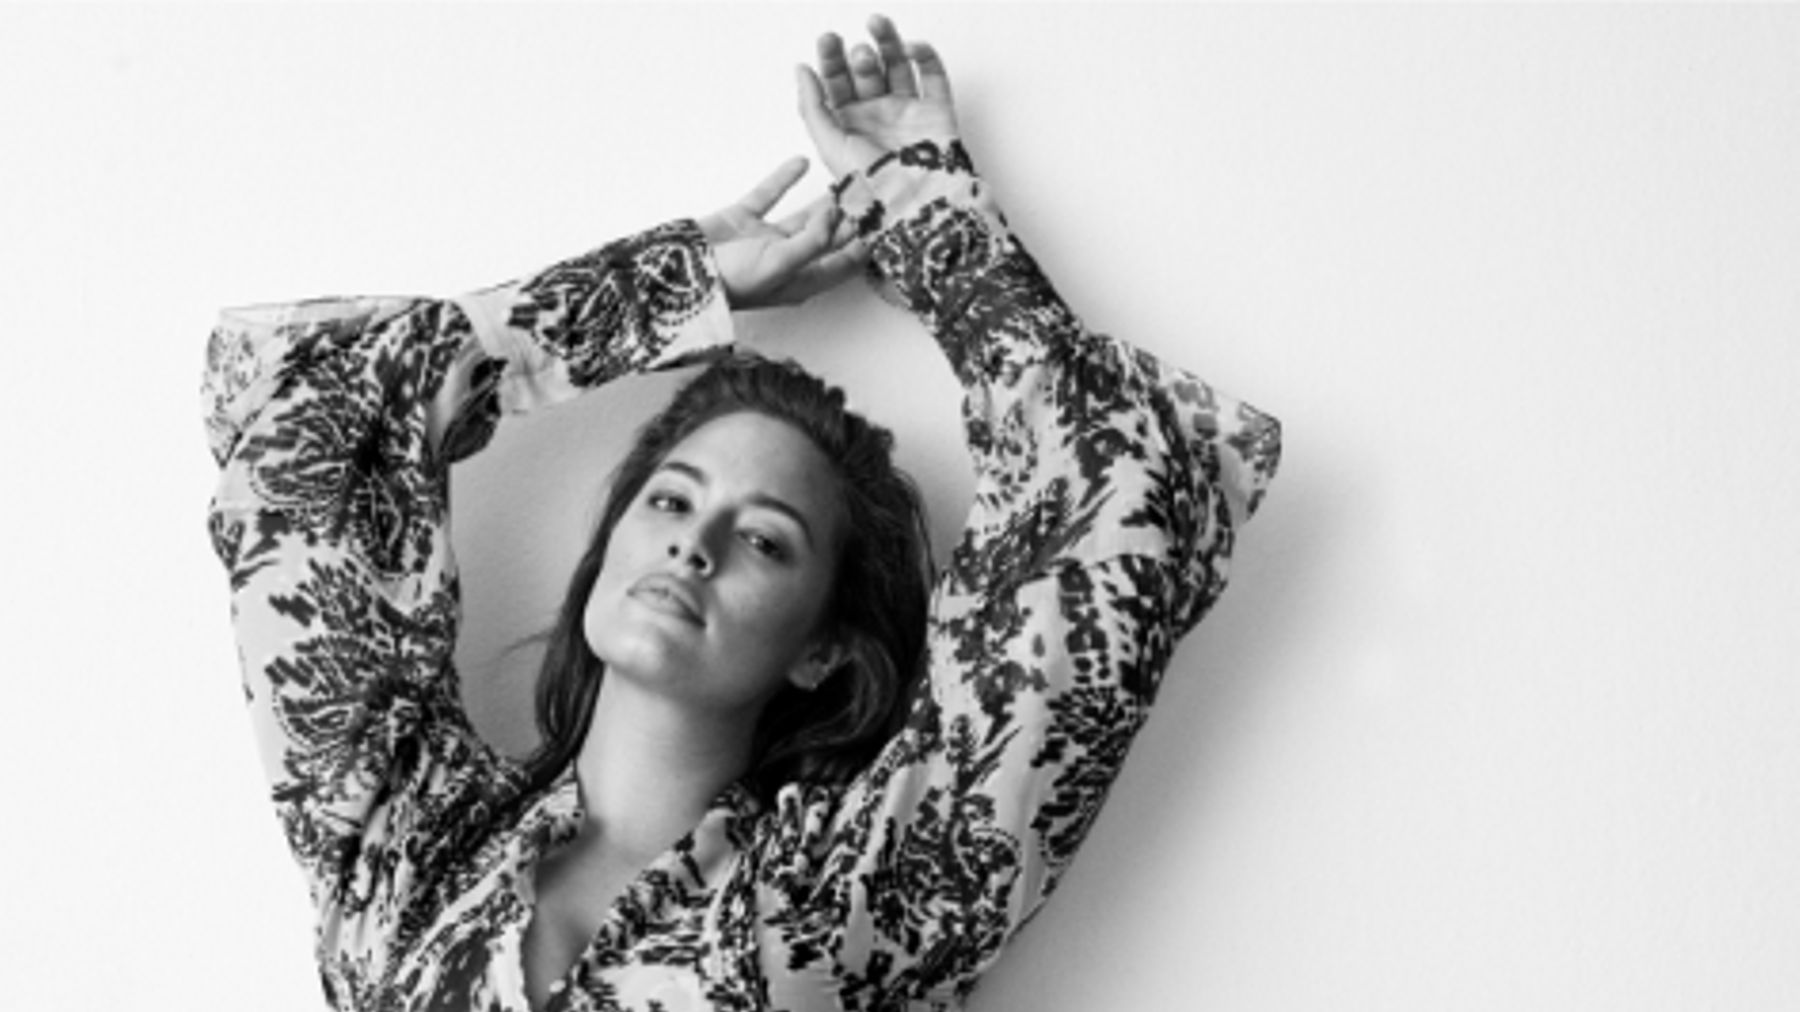 13de84df1e15 H&M's New Studio Collection Celebrates Diversity With Ashley Graham ...